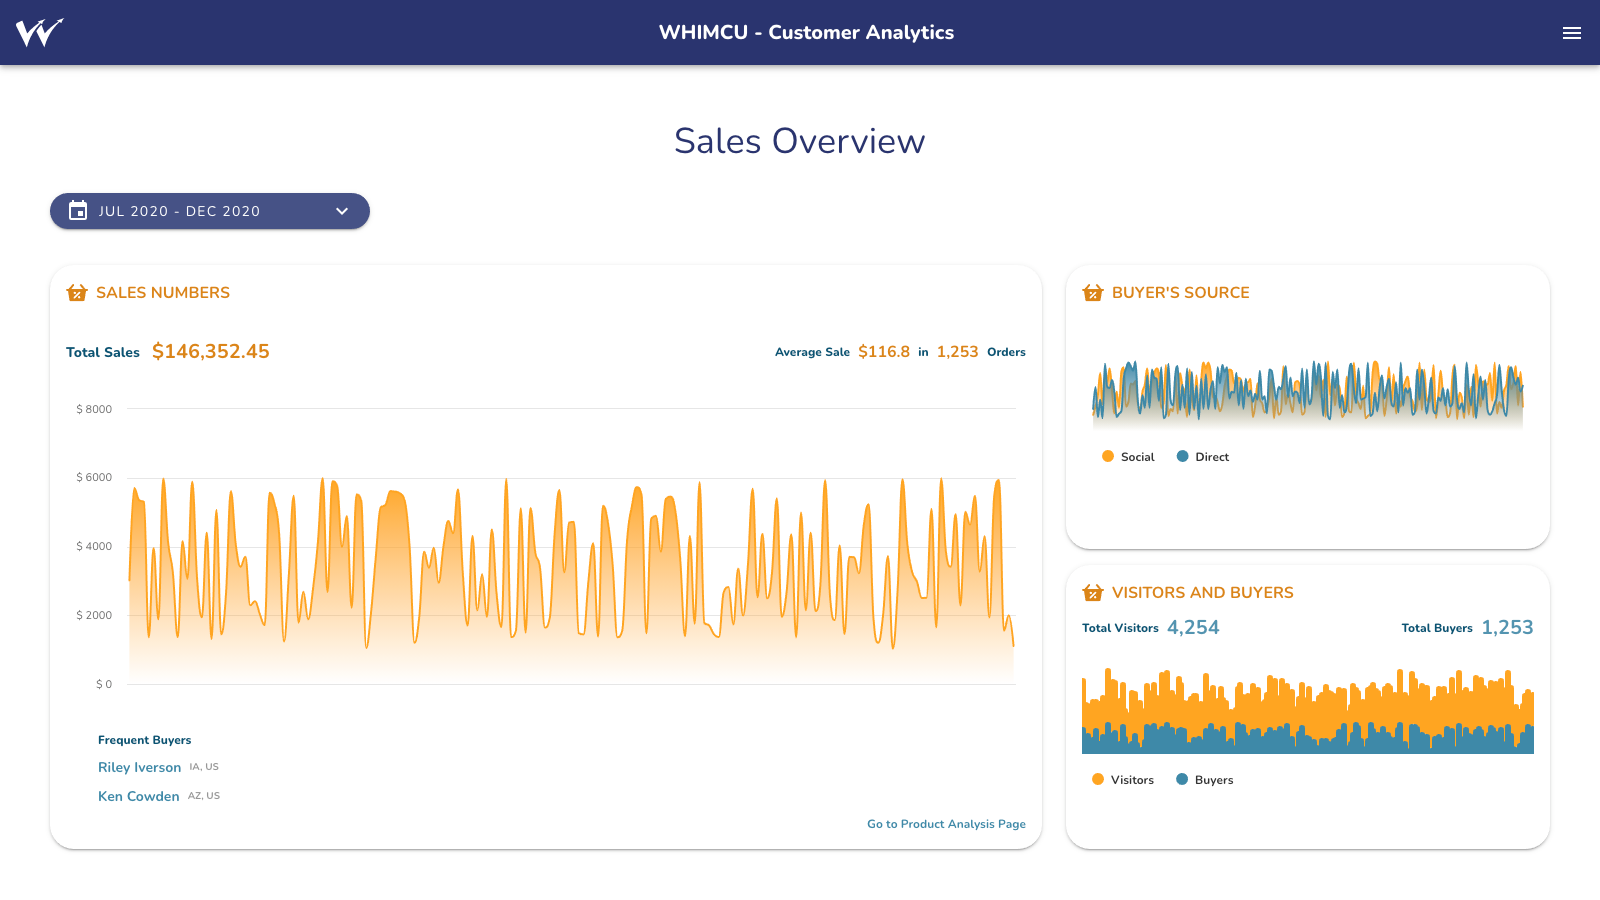 Whimcu sales overview page